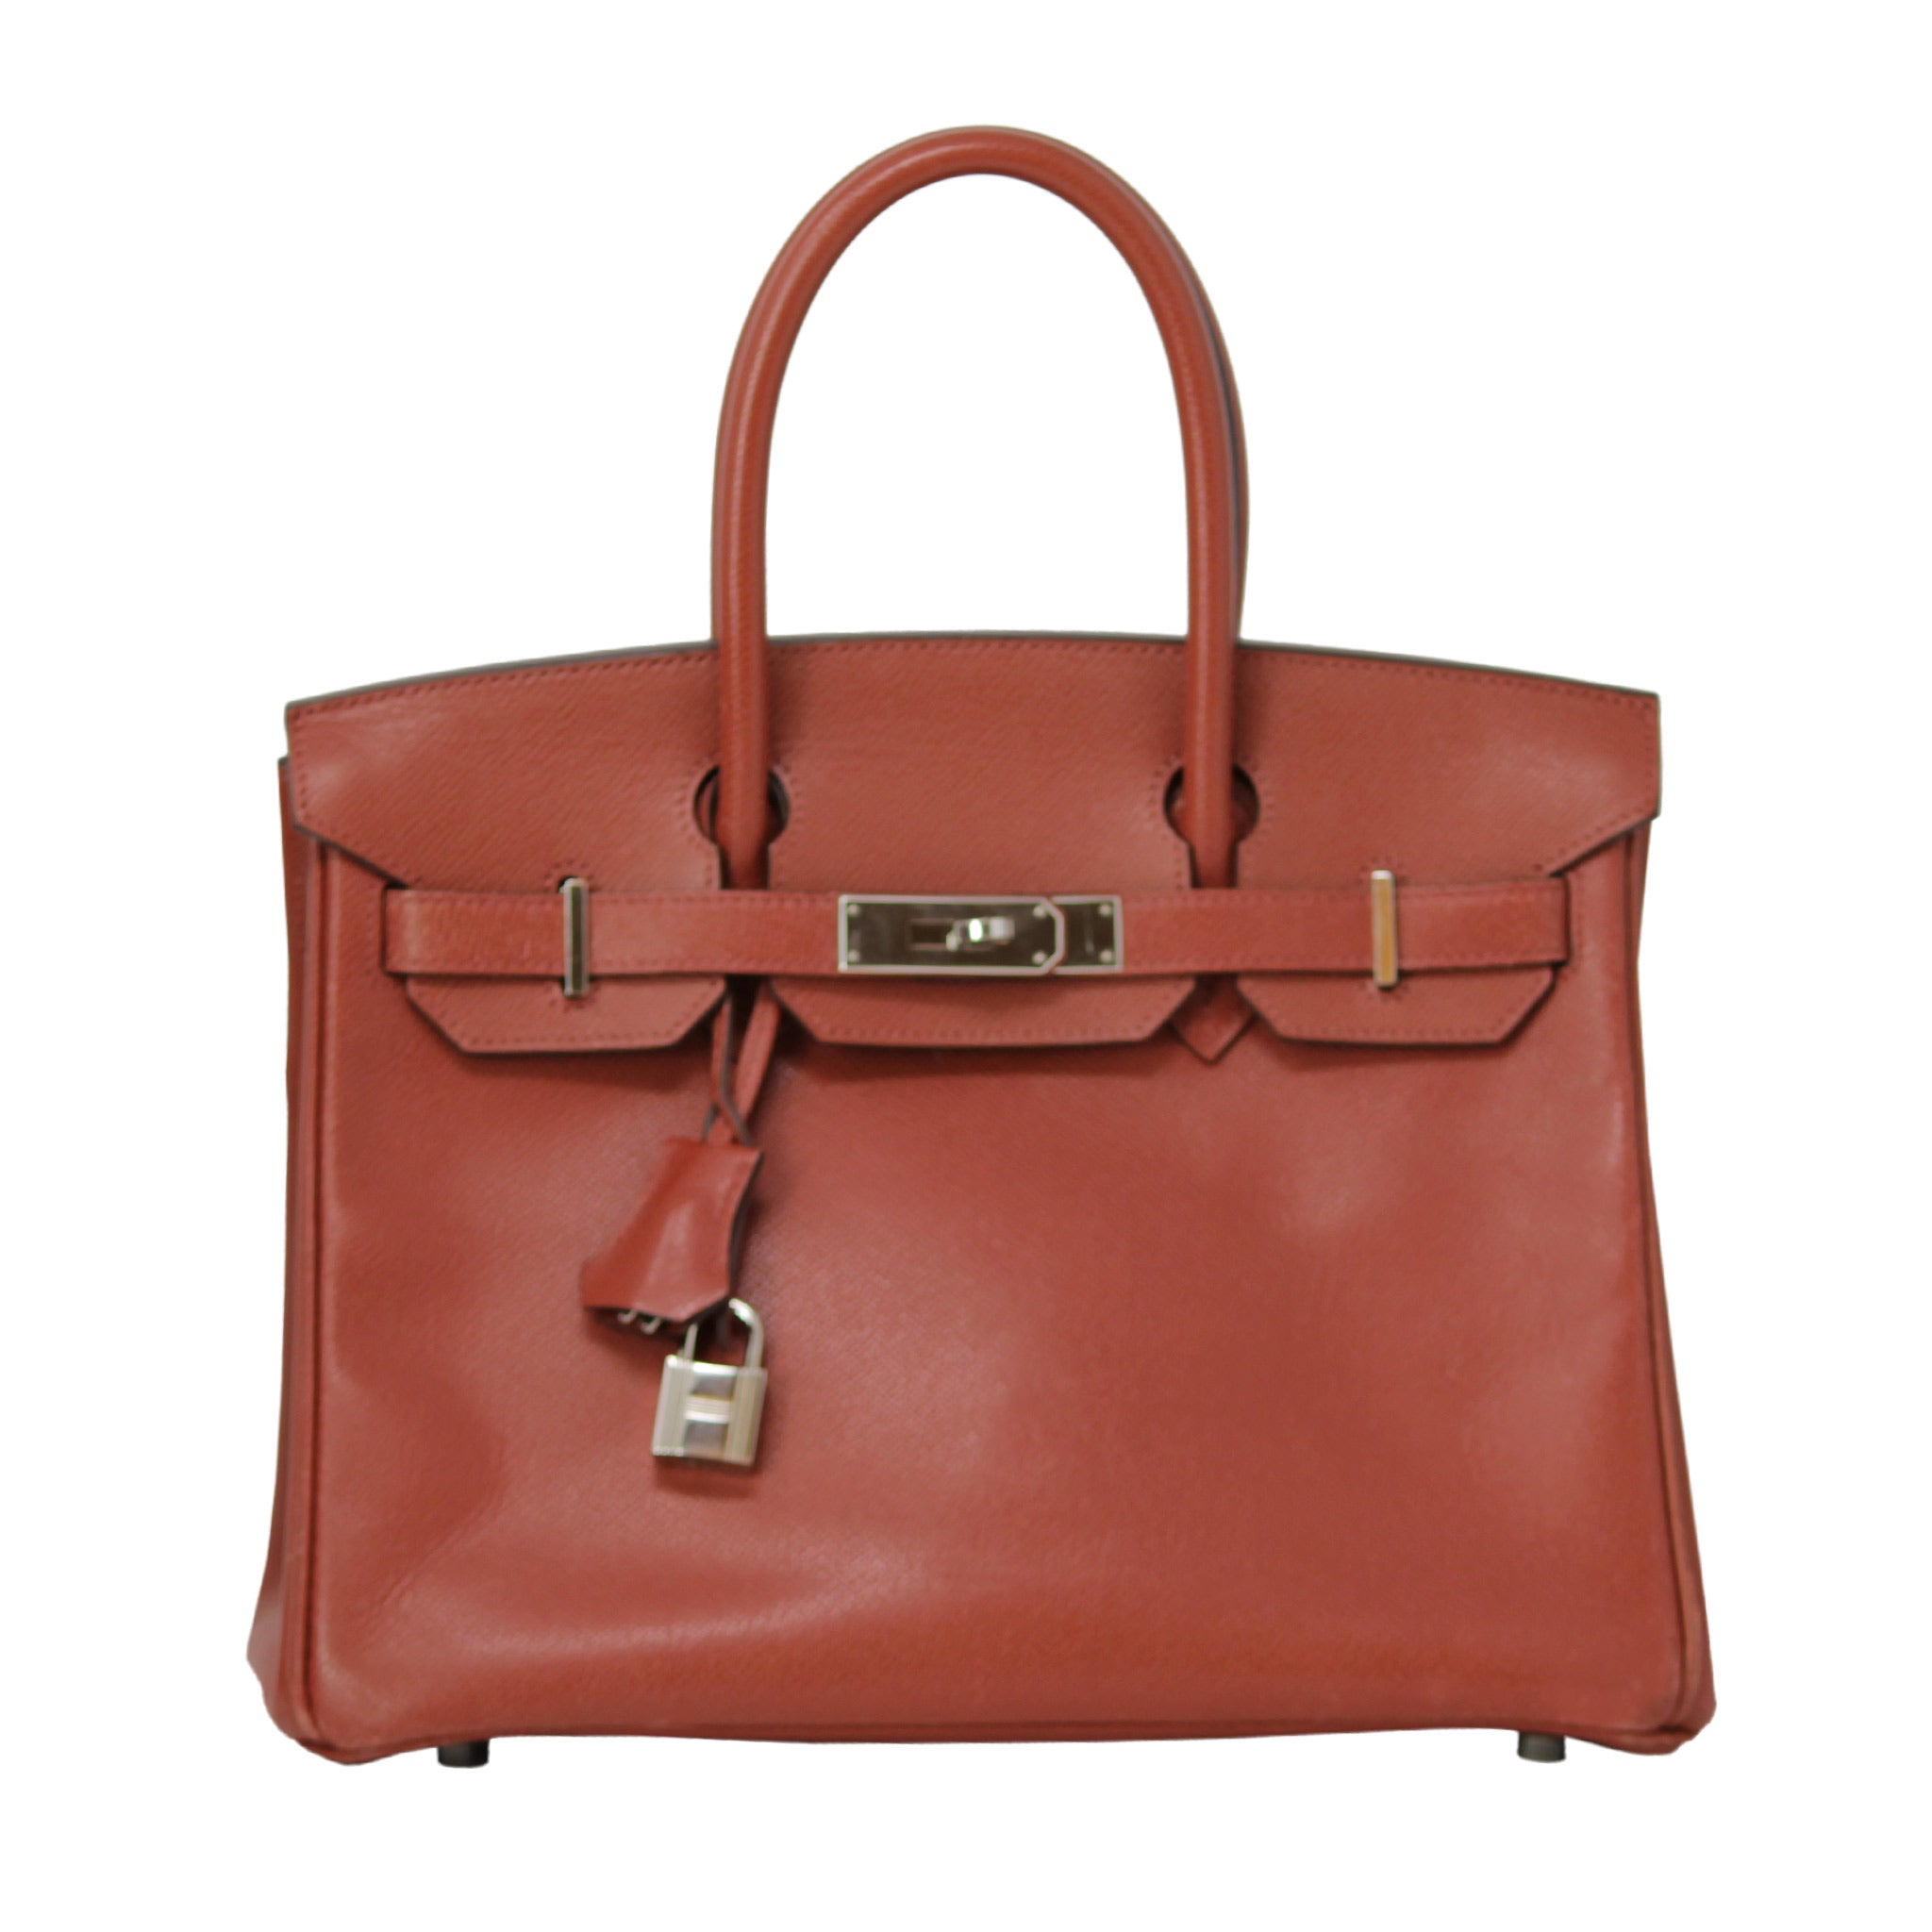 Hermes Birkin Rare Rust Color Clemence Leather Purse Bag